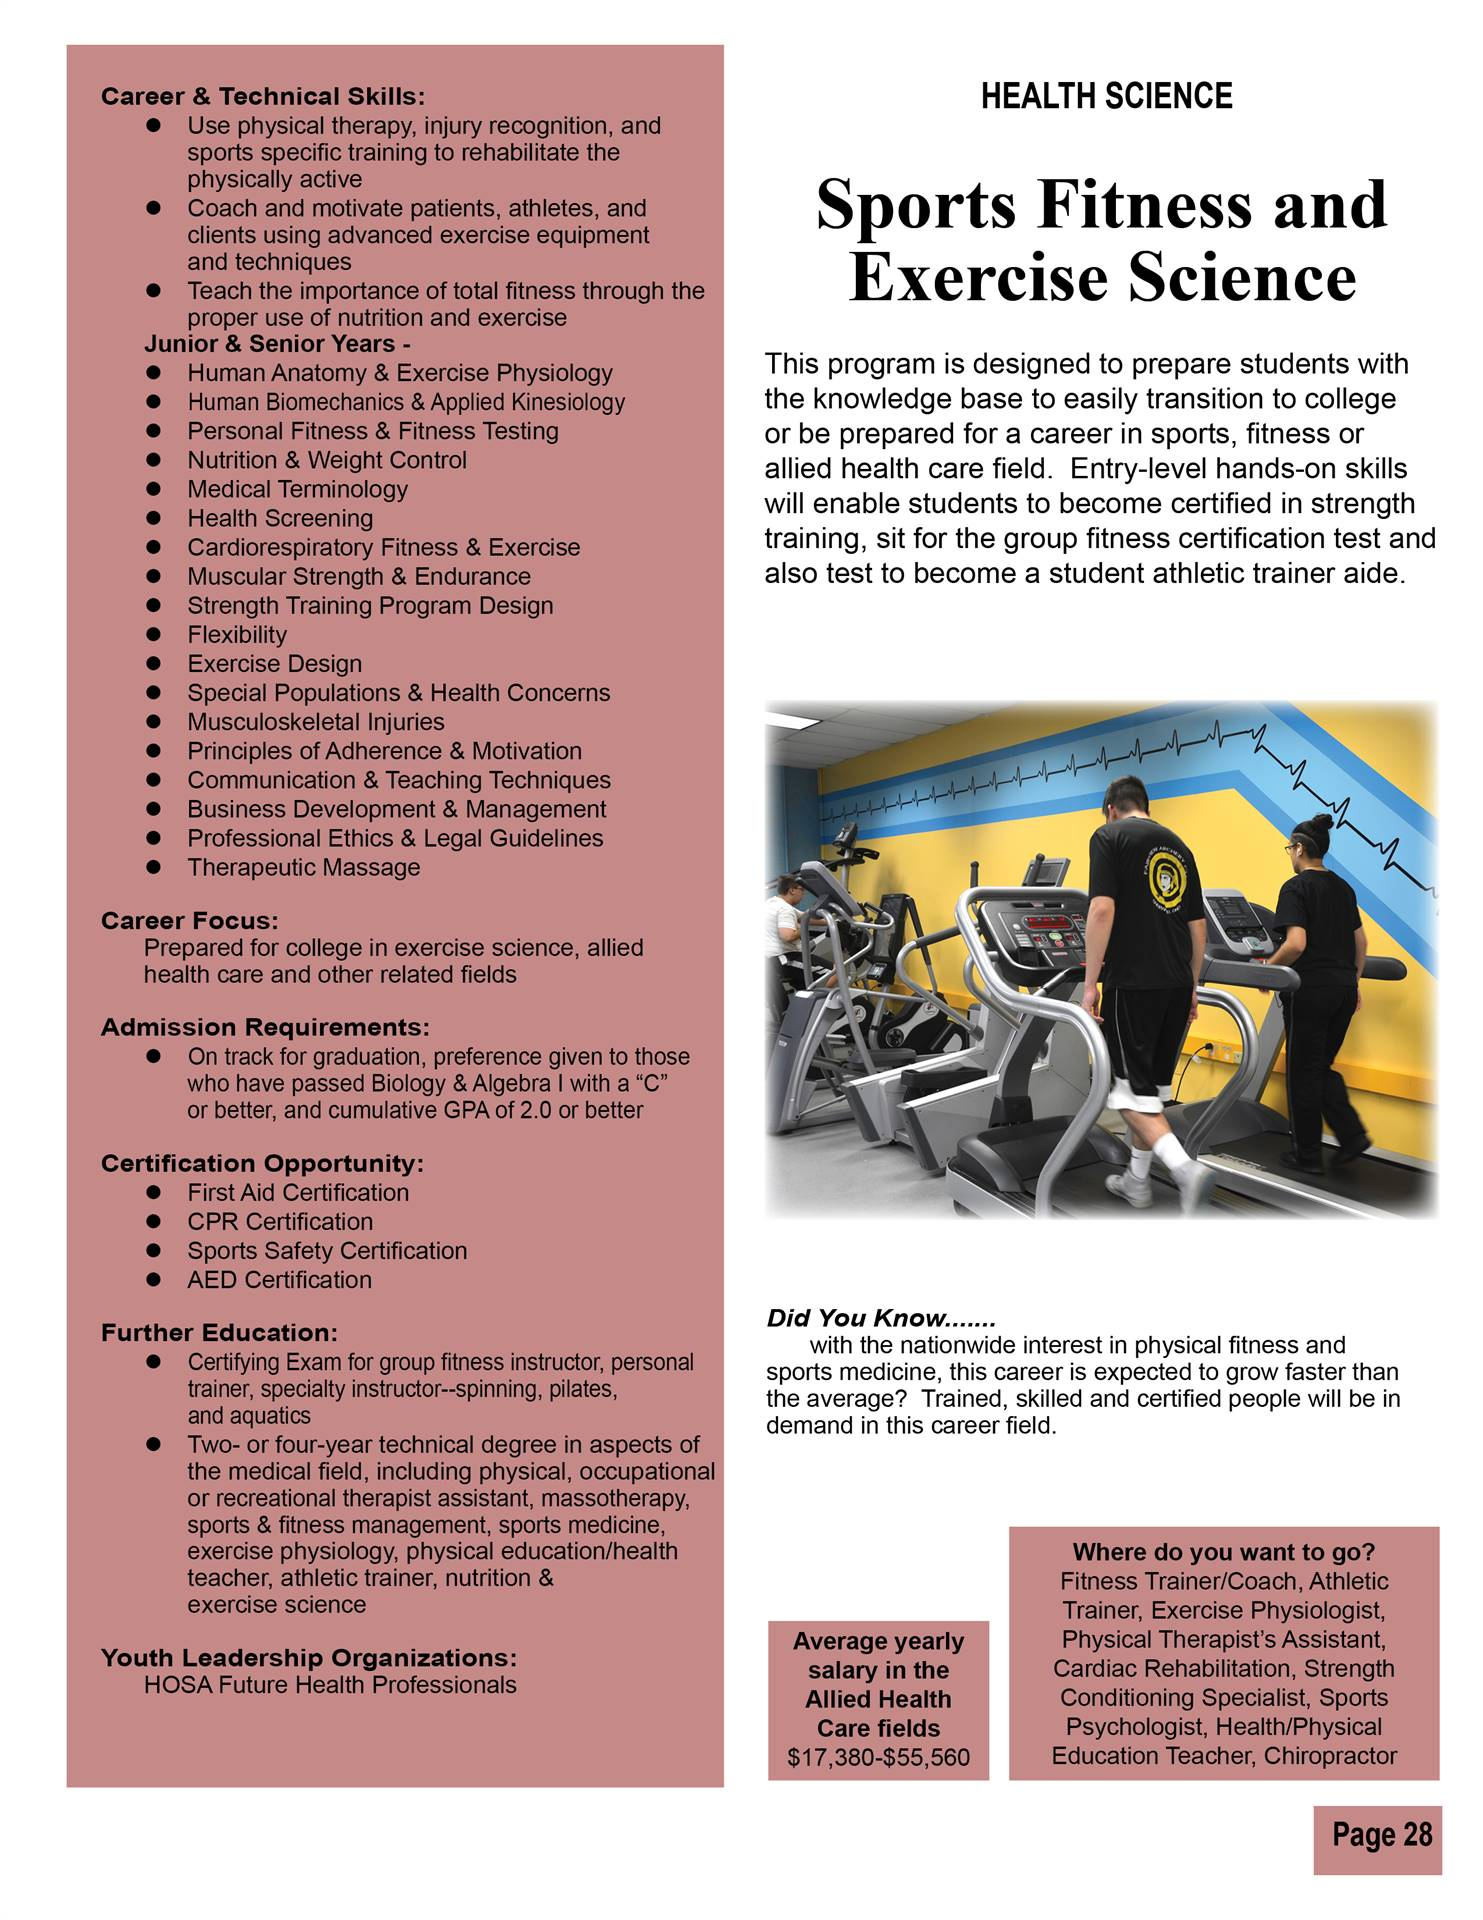 Sports Fitness and Exercise Science